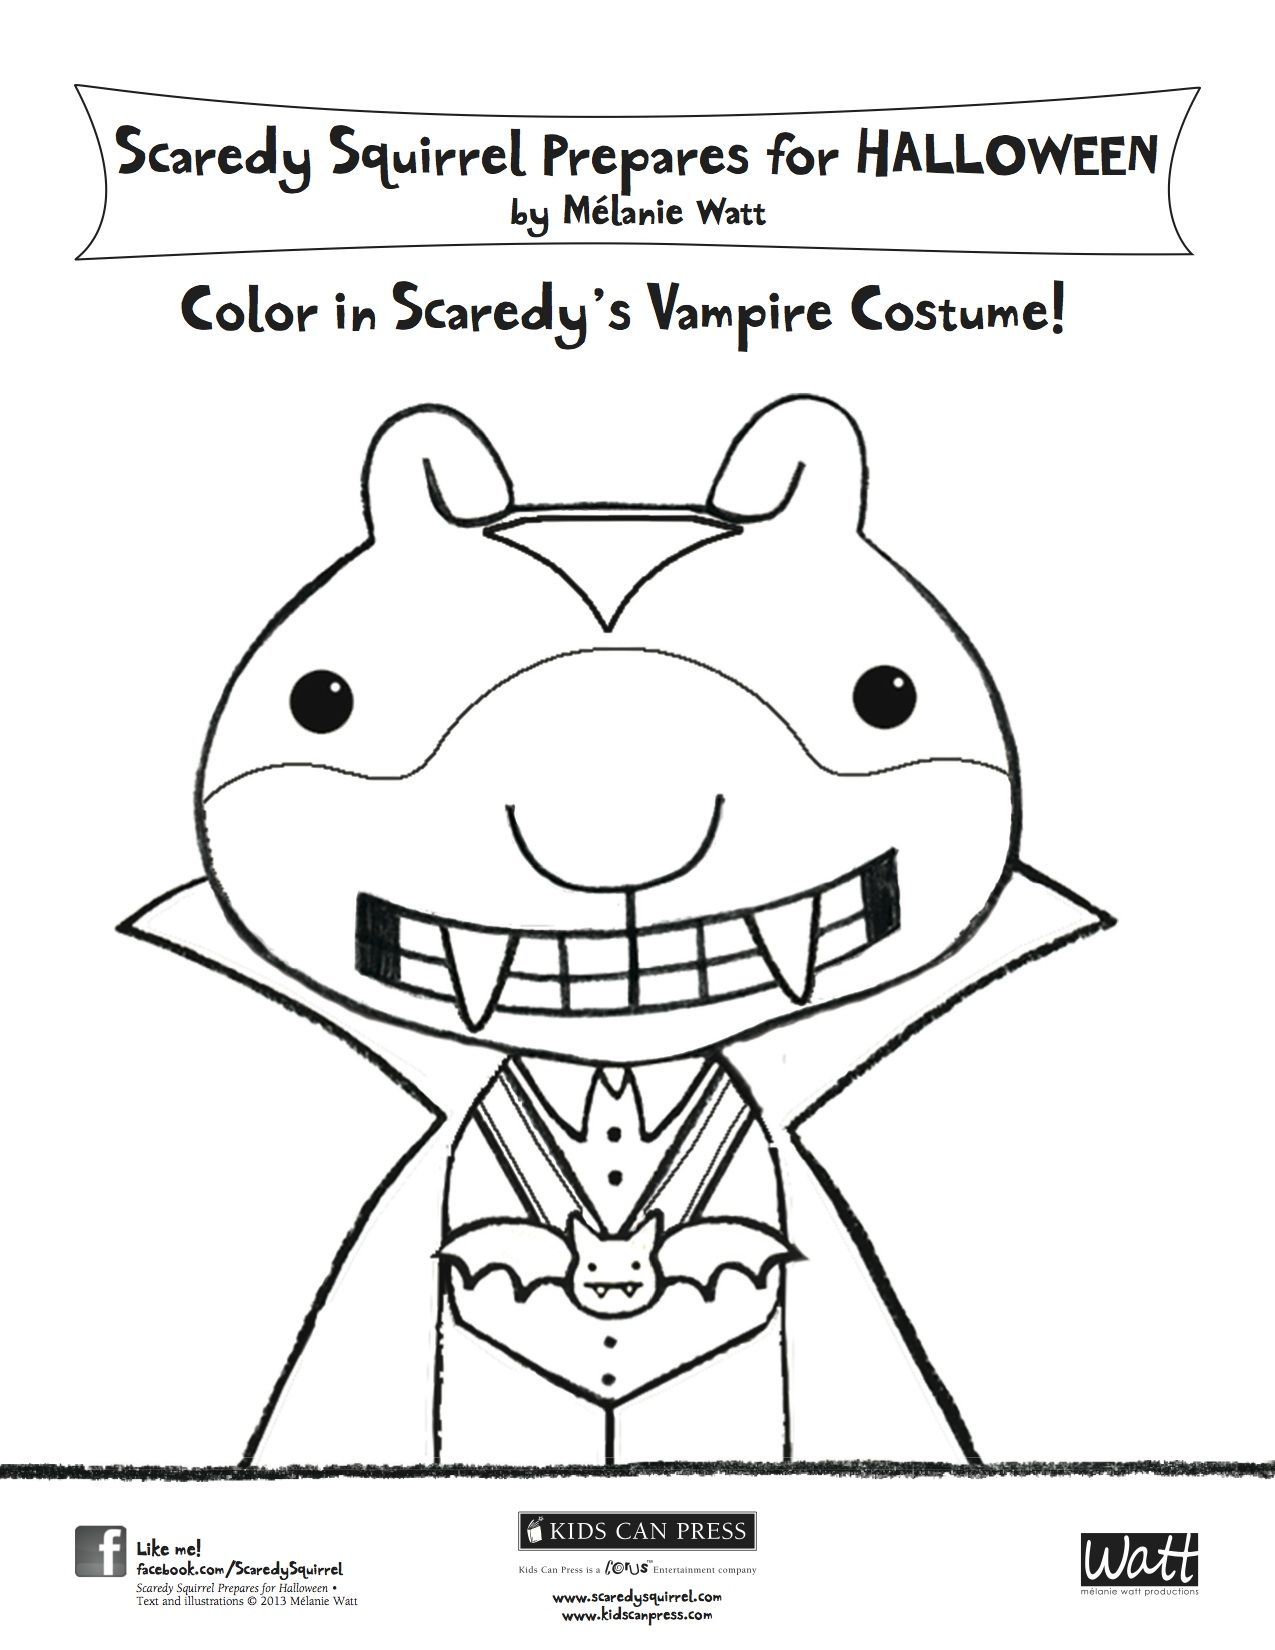 Color In Scaredy S Vampire Costume Scaredy Squirrel Prepares For